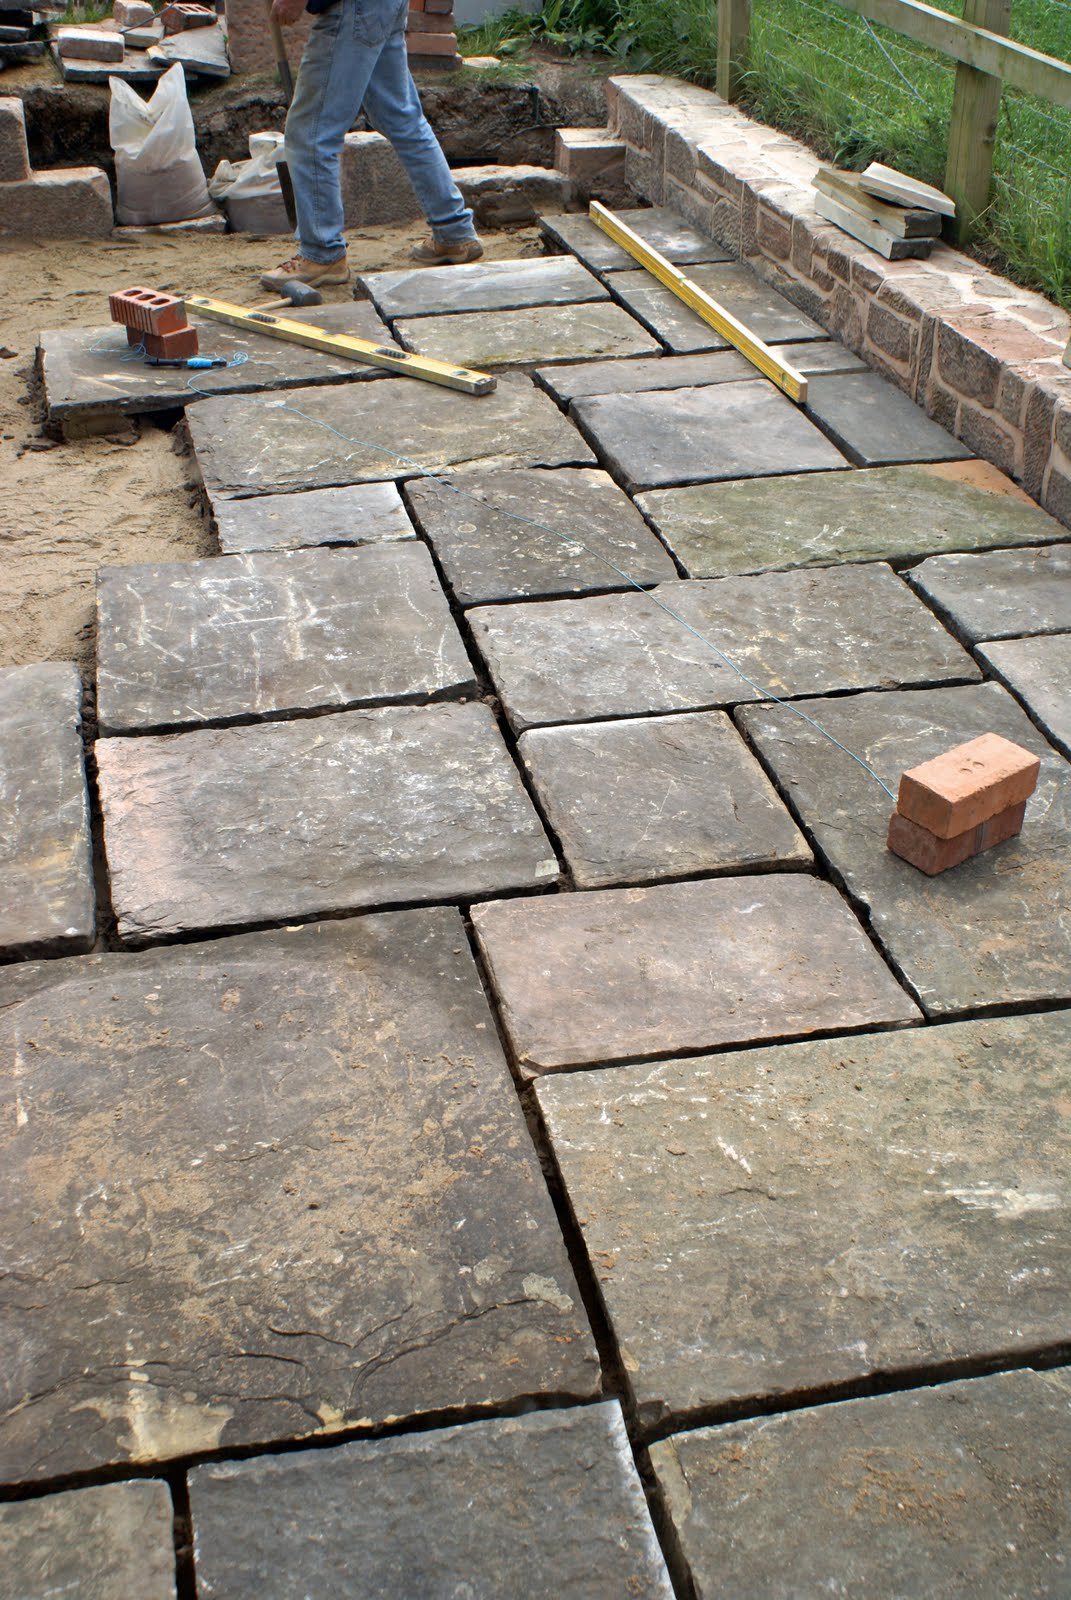 Marvelous Brick Border Around Concrete Patio | New Brick Patio | Pinterest | Concrete  Bricks, Brick Patios And Concrete